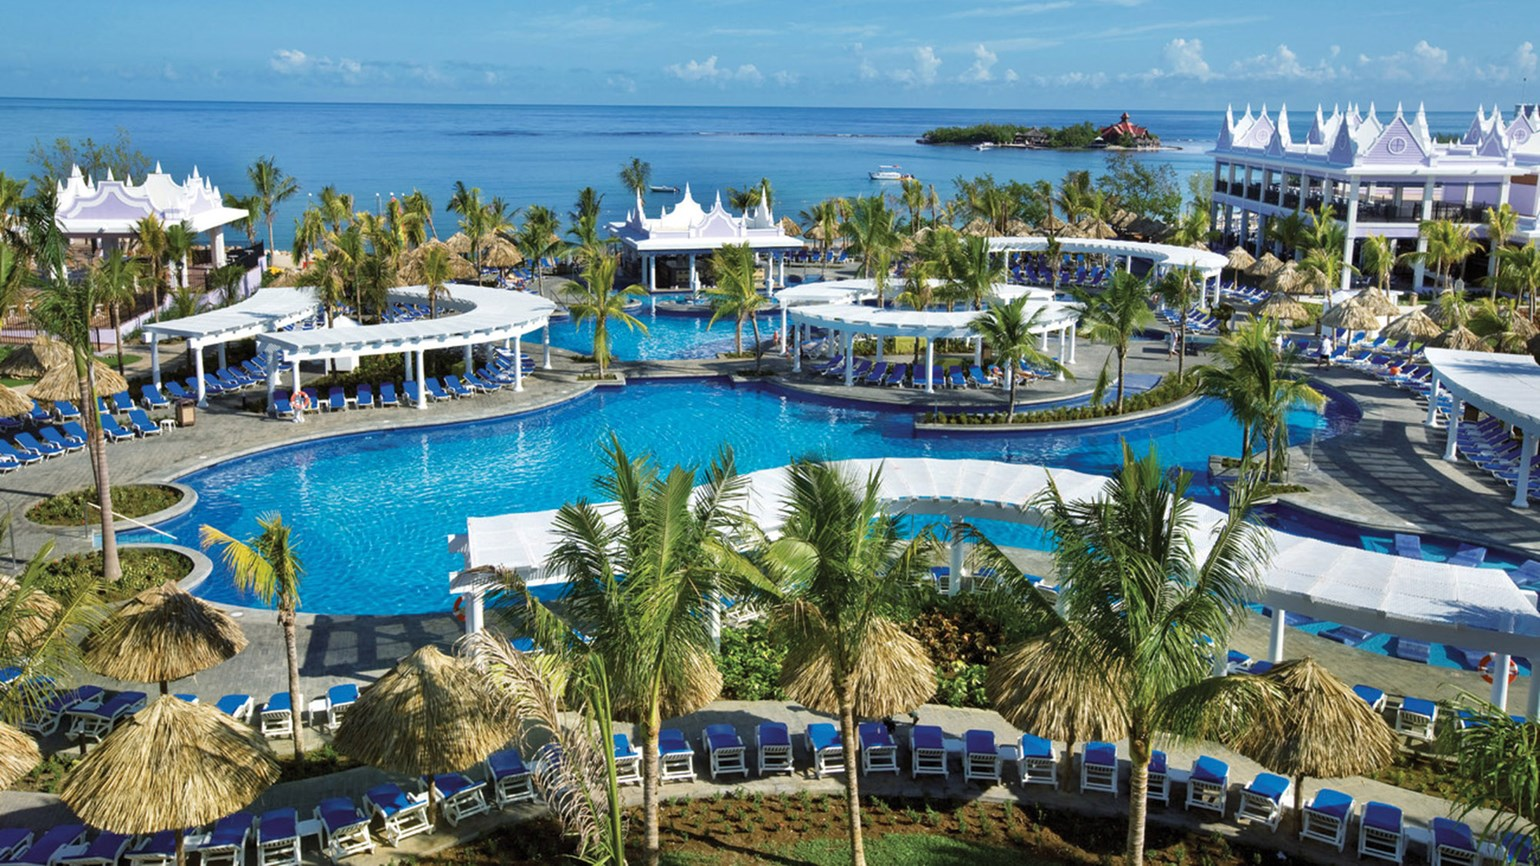 The All Inclusive Hotel Riu Montego Bay With Its Many Pools And Other Amenities Is A Great Base From Which To Explore Jamaica Experience Warmth Of